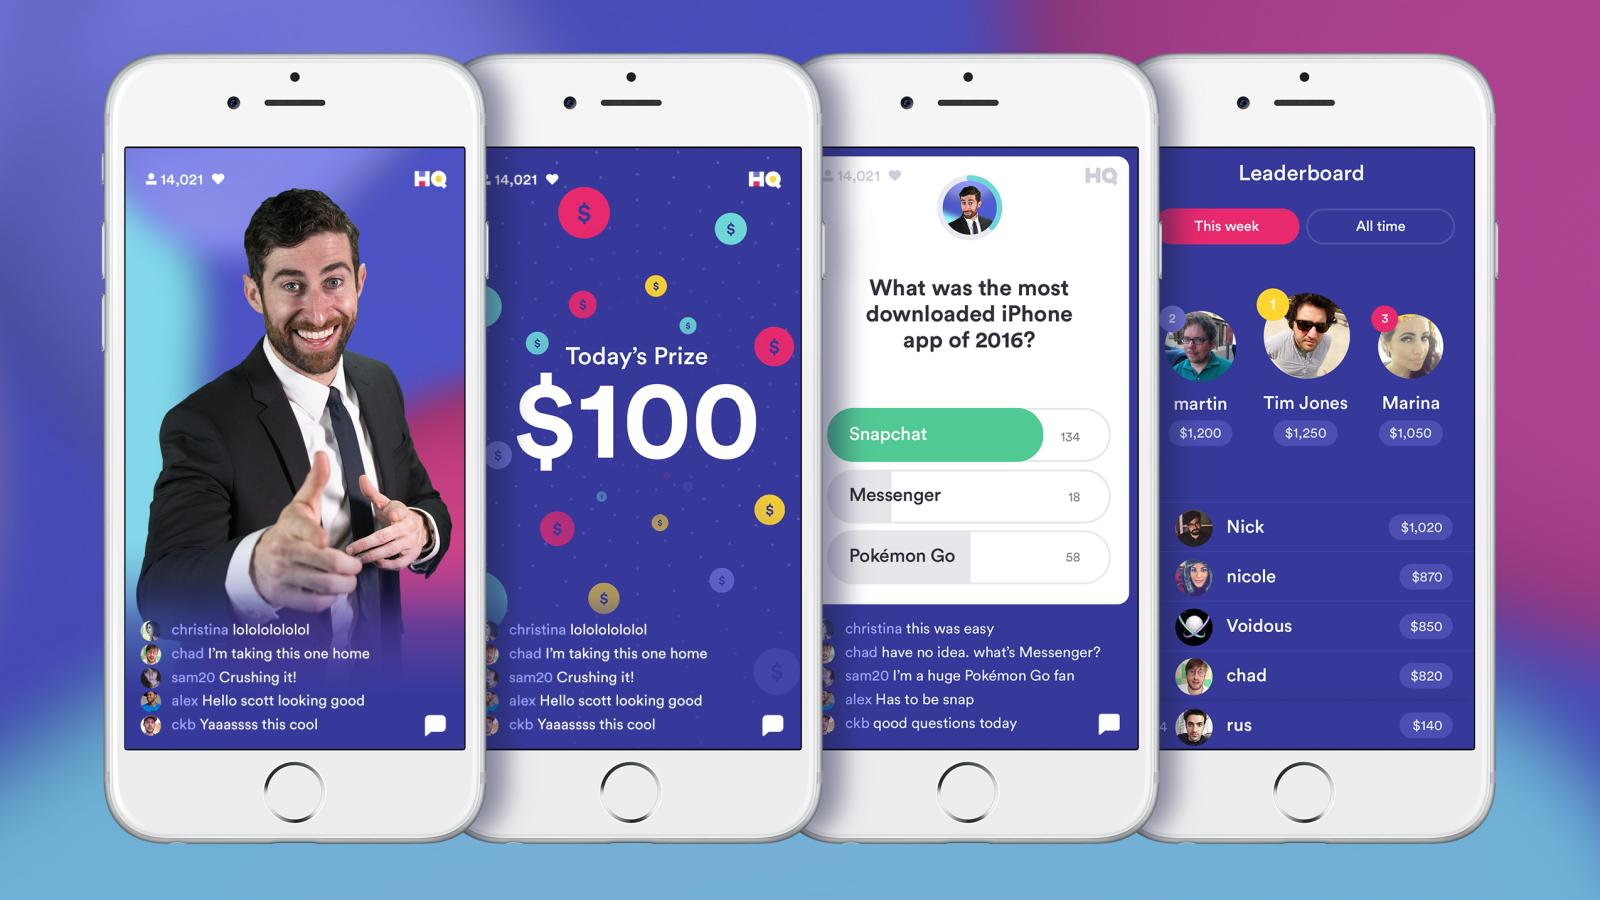 HQ is a primer trivia game